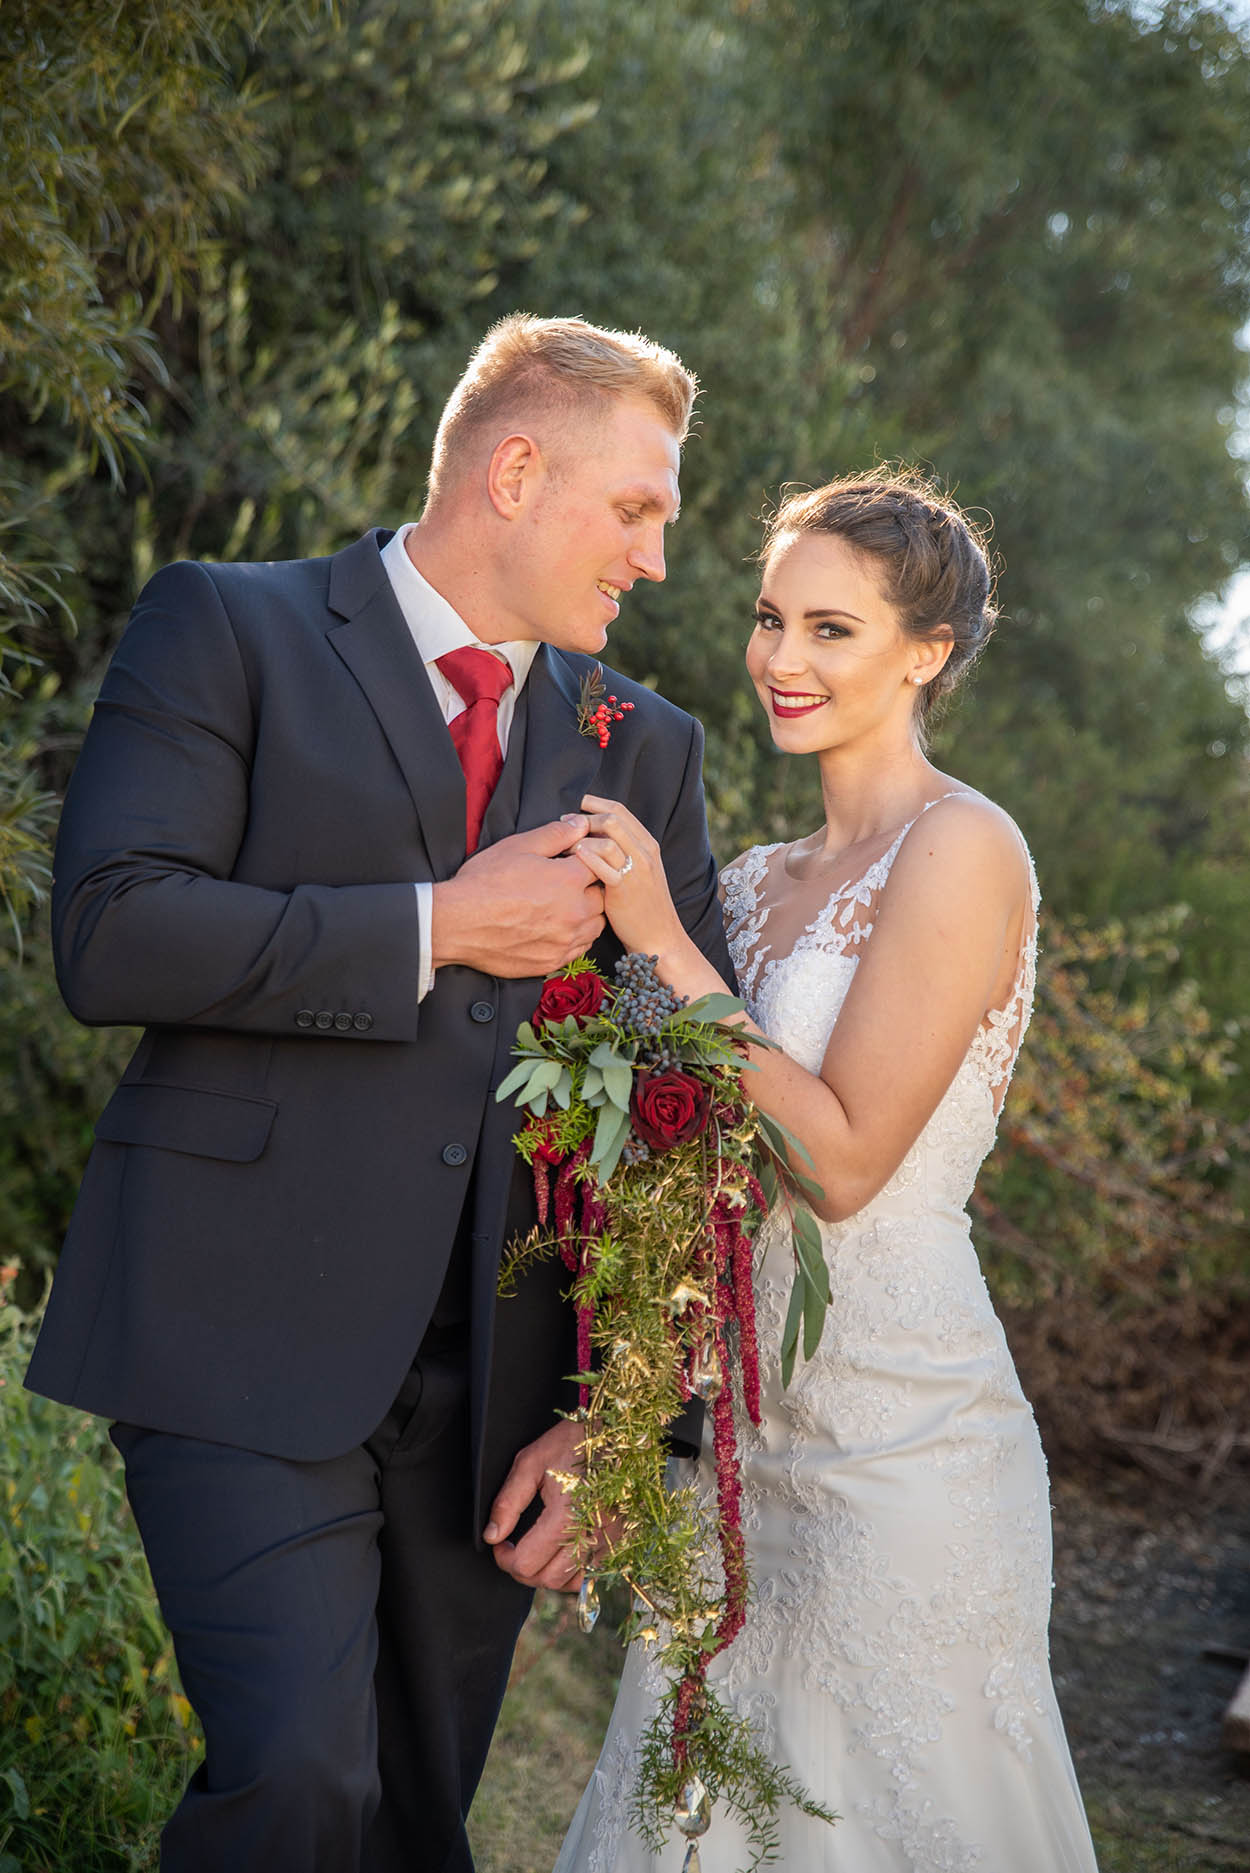 wedding photo by Mudboots at Monte Bello Estate Bloemfontein bridal couple